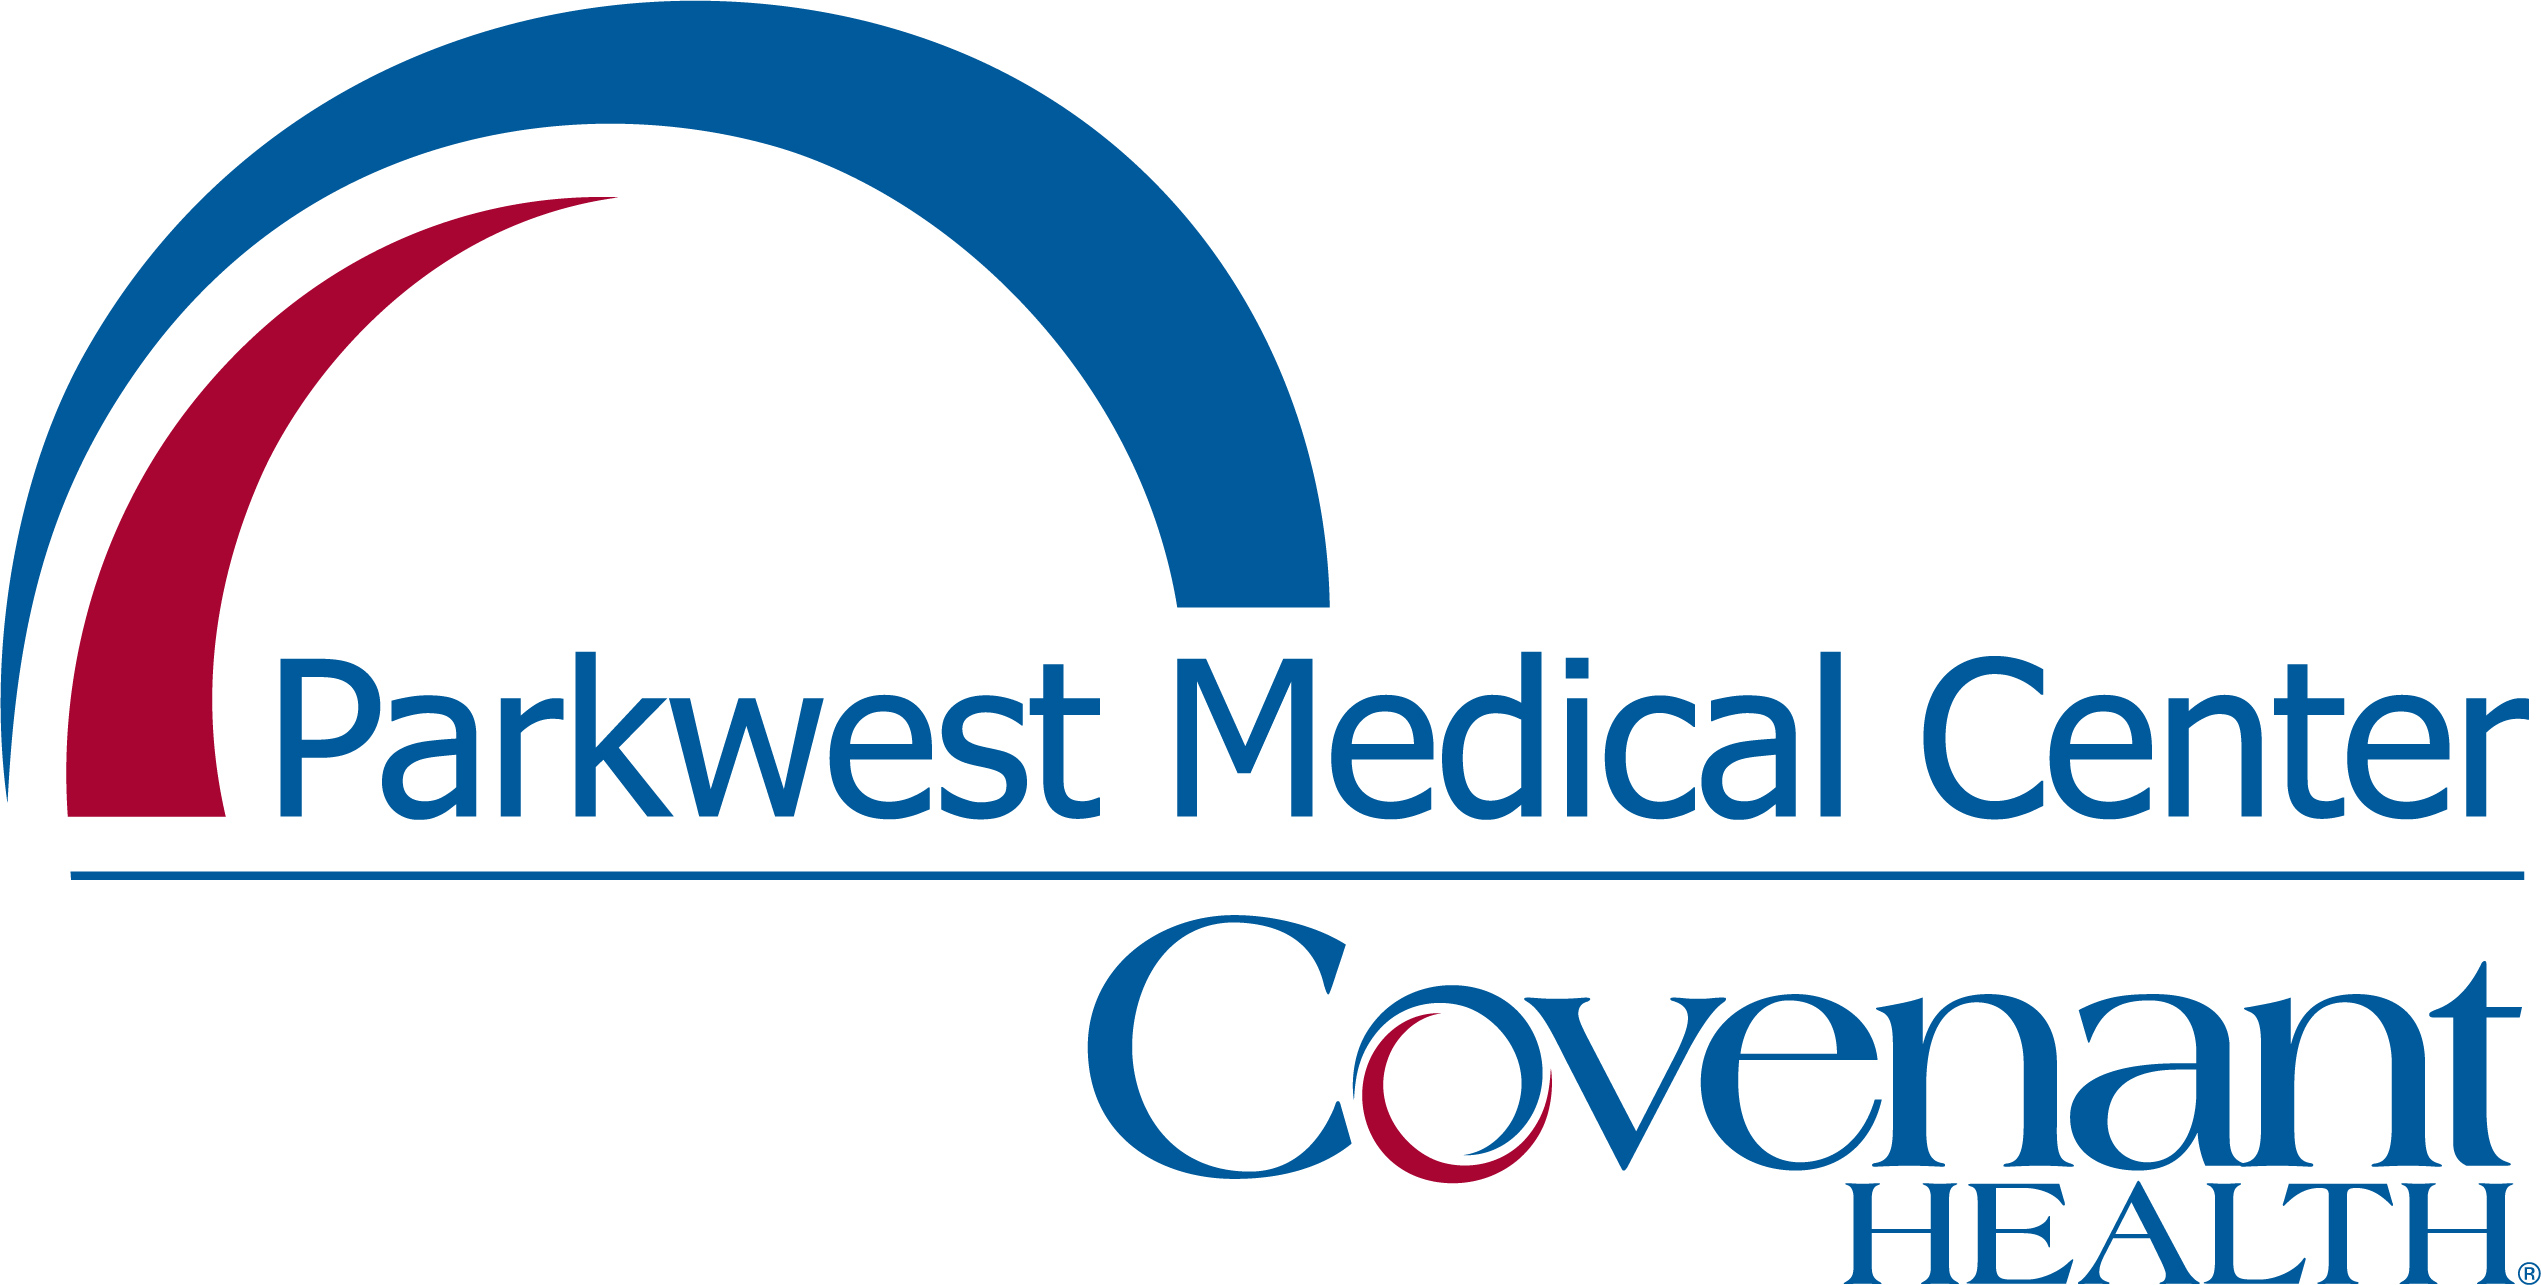 Parkwest Medical Center Named to List of Top 50 Cardiovascular Hospitals by Fortune.com/IBM Watson Health